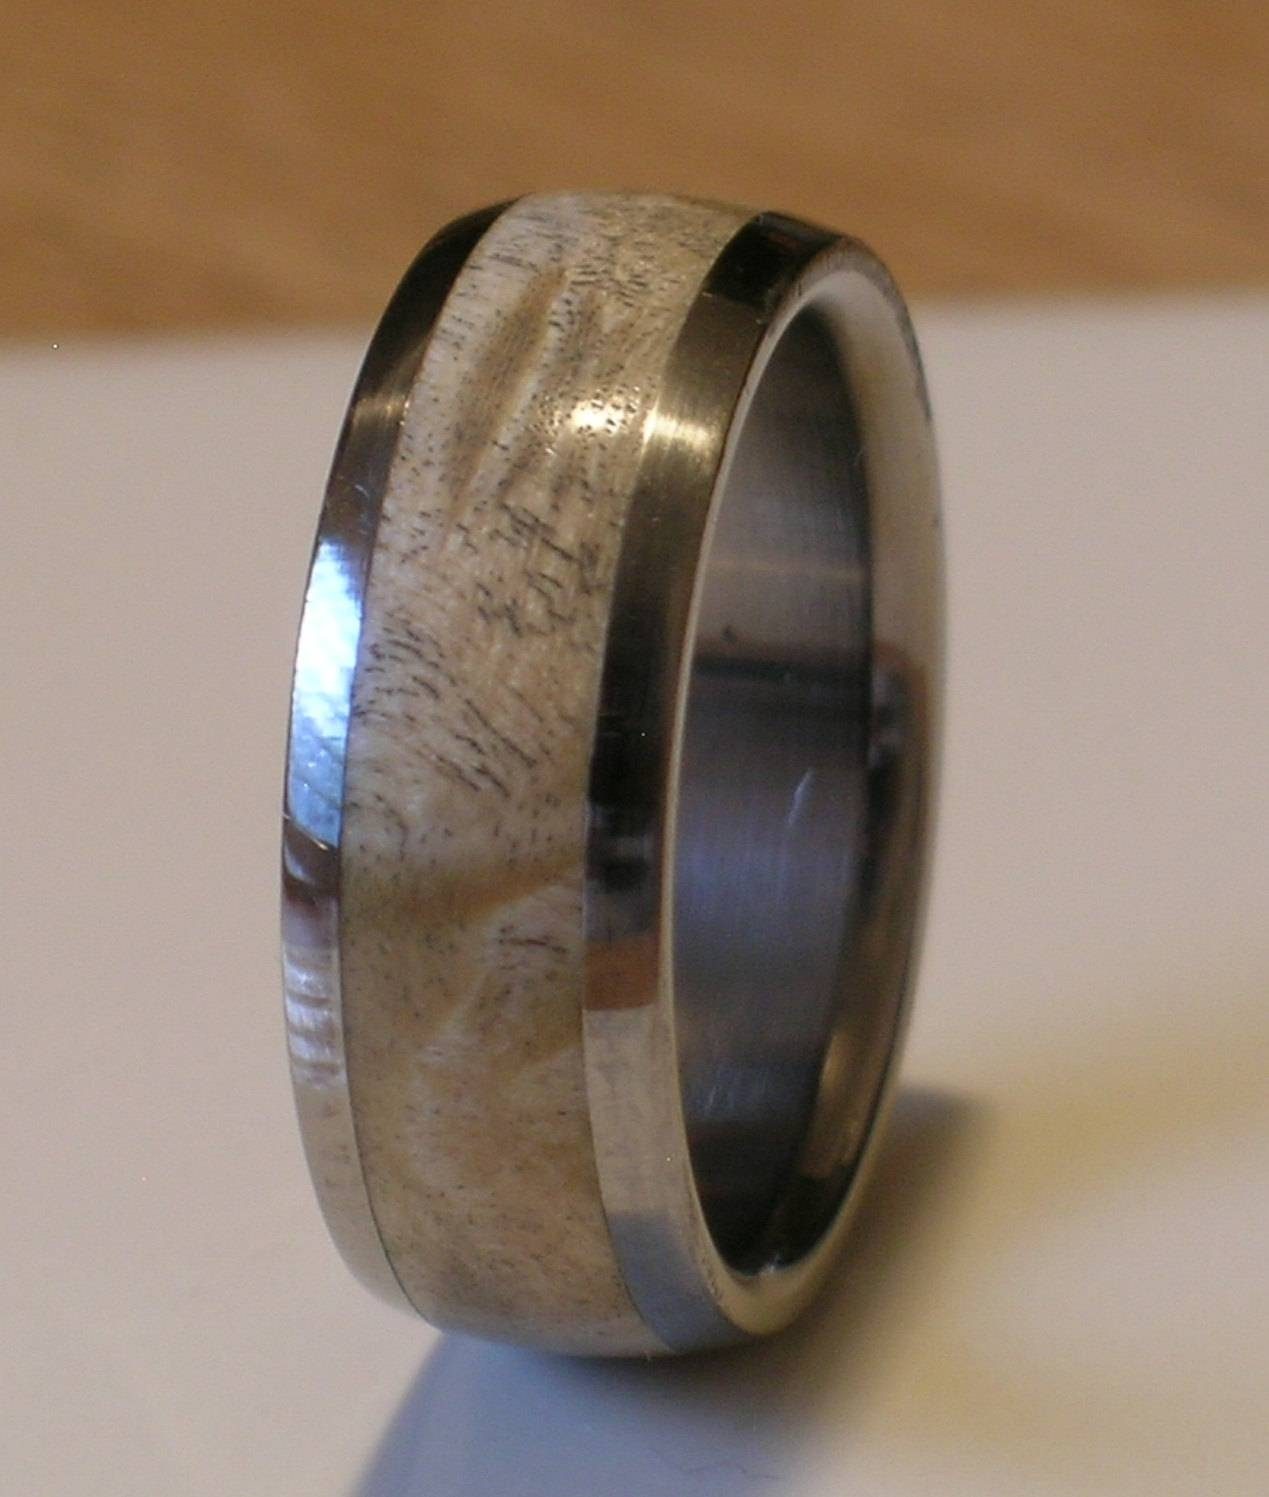 Wooden Wedding Rings Of Distinct And Generosity | Wedding Ideas Regarding Wood And Metal Wedding Bands (View 15 of 15)